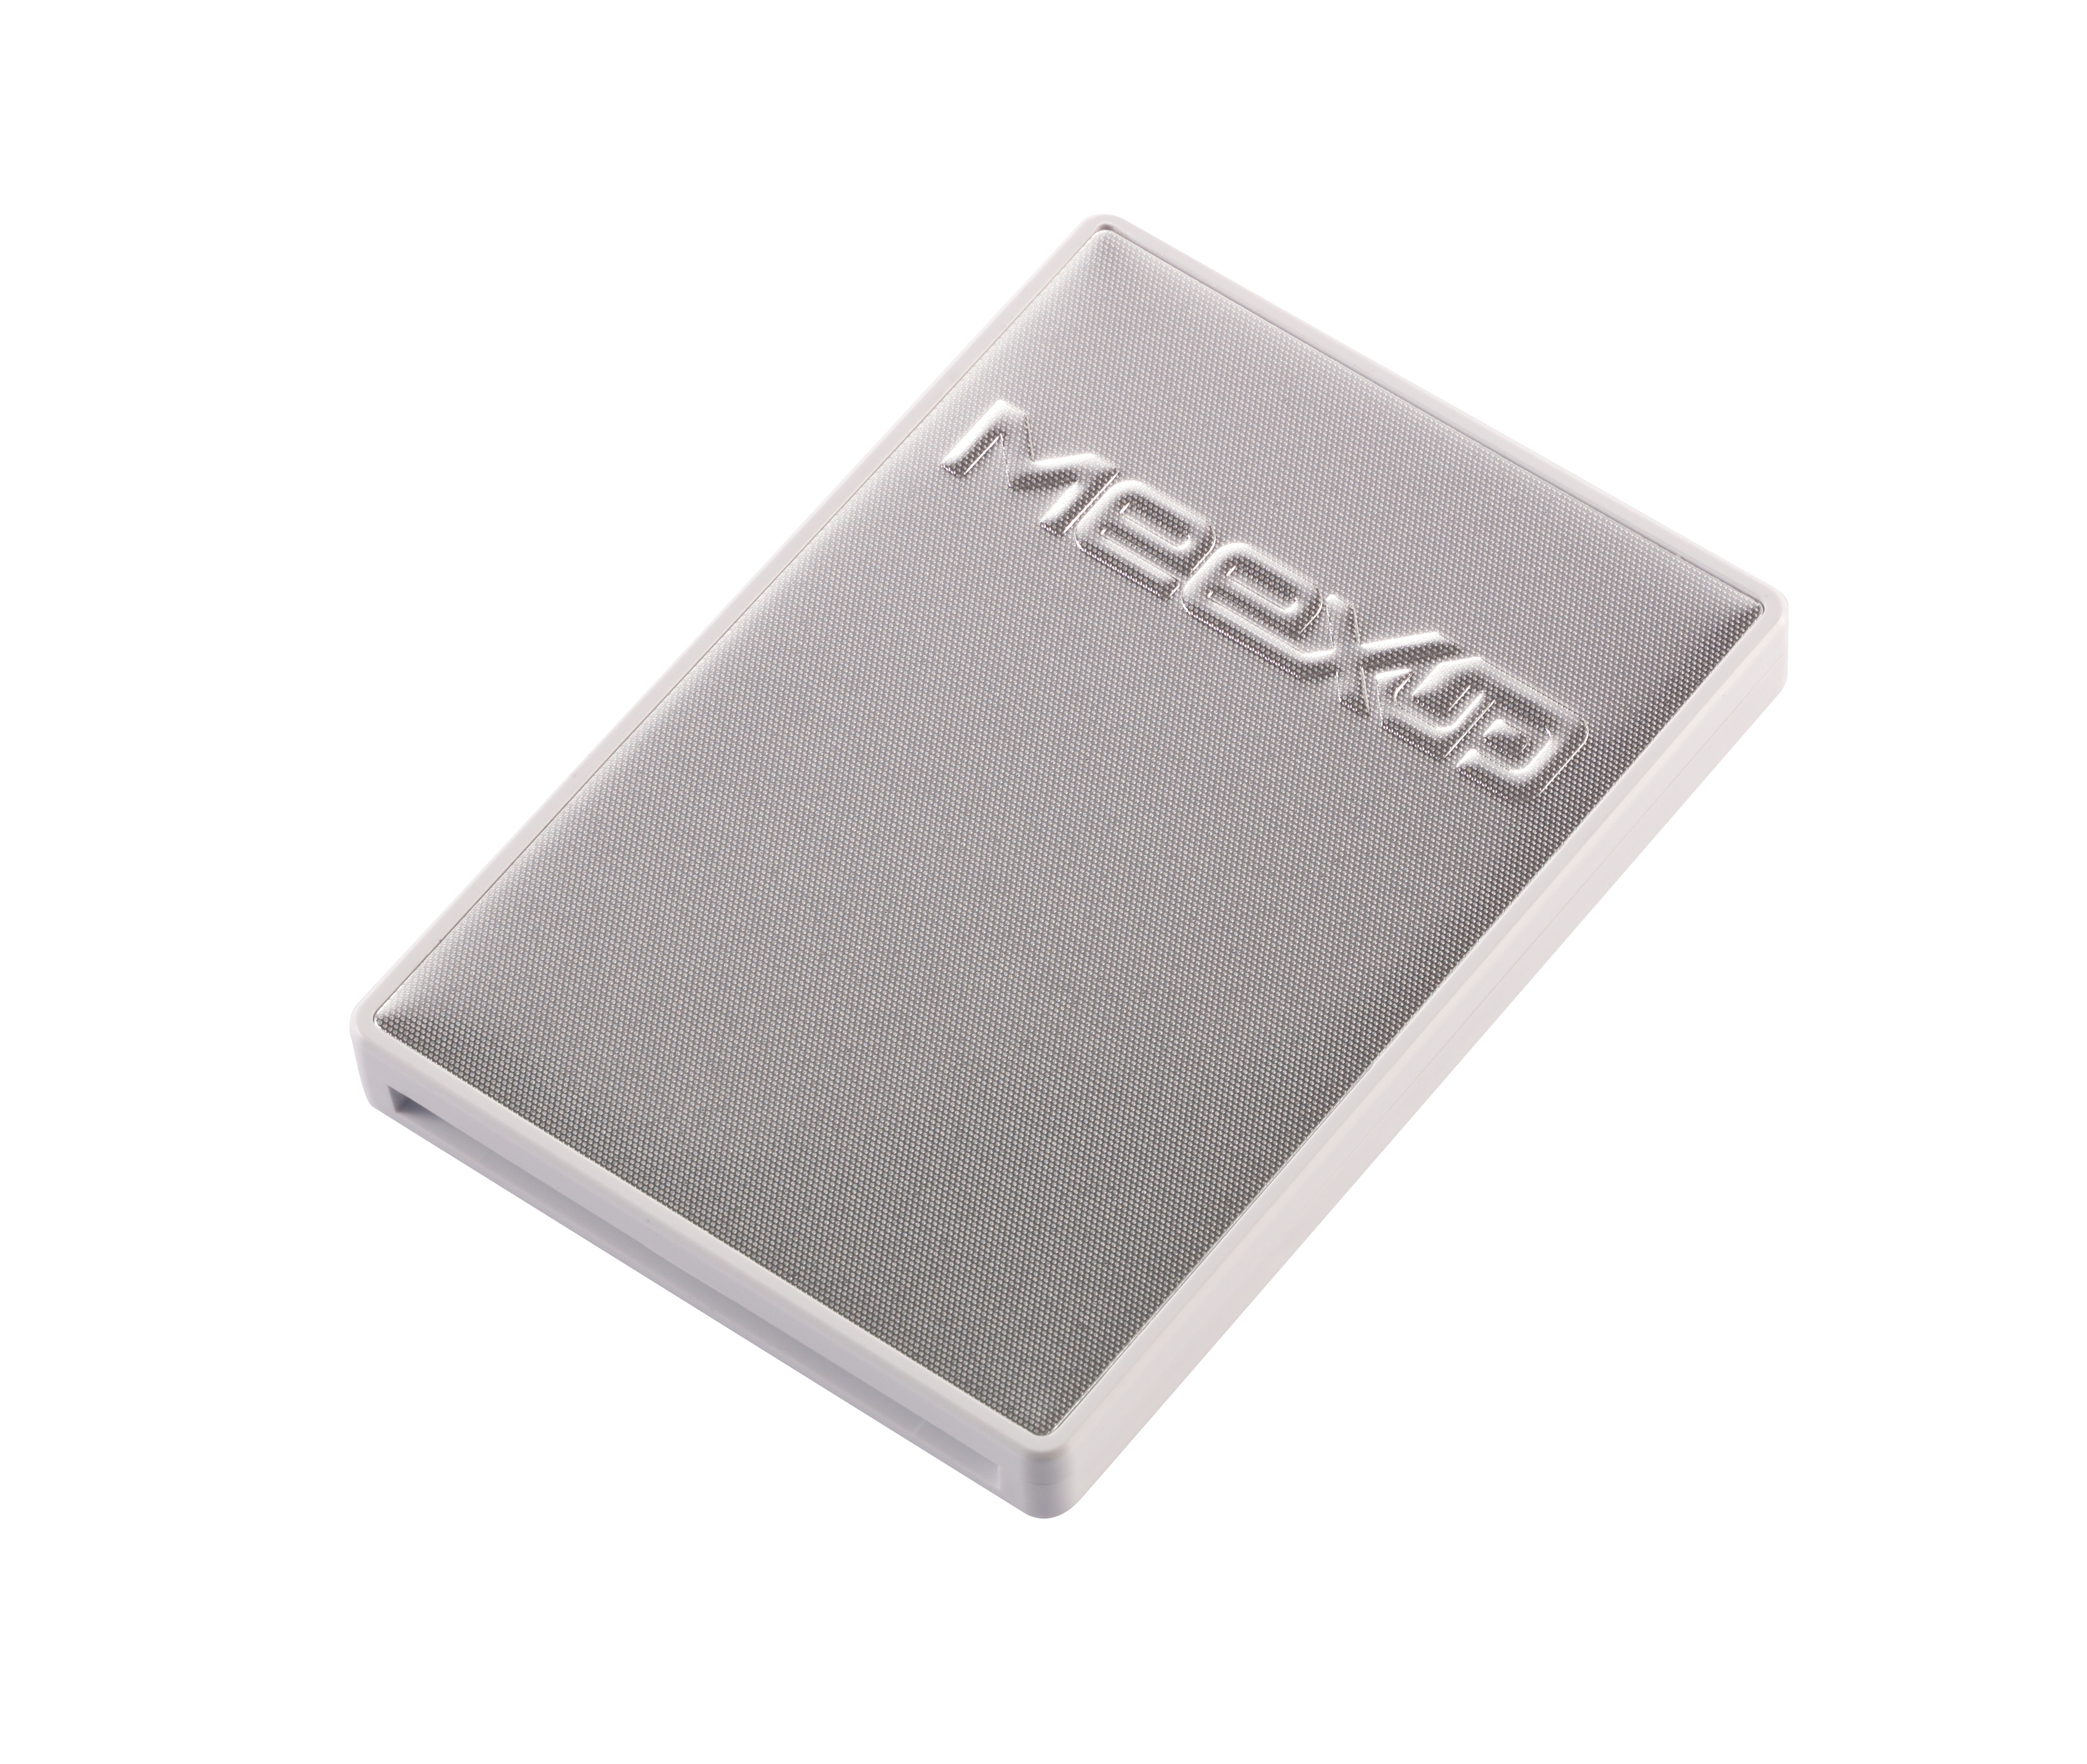 MeexUp cardholder 4 Cards White-Silver